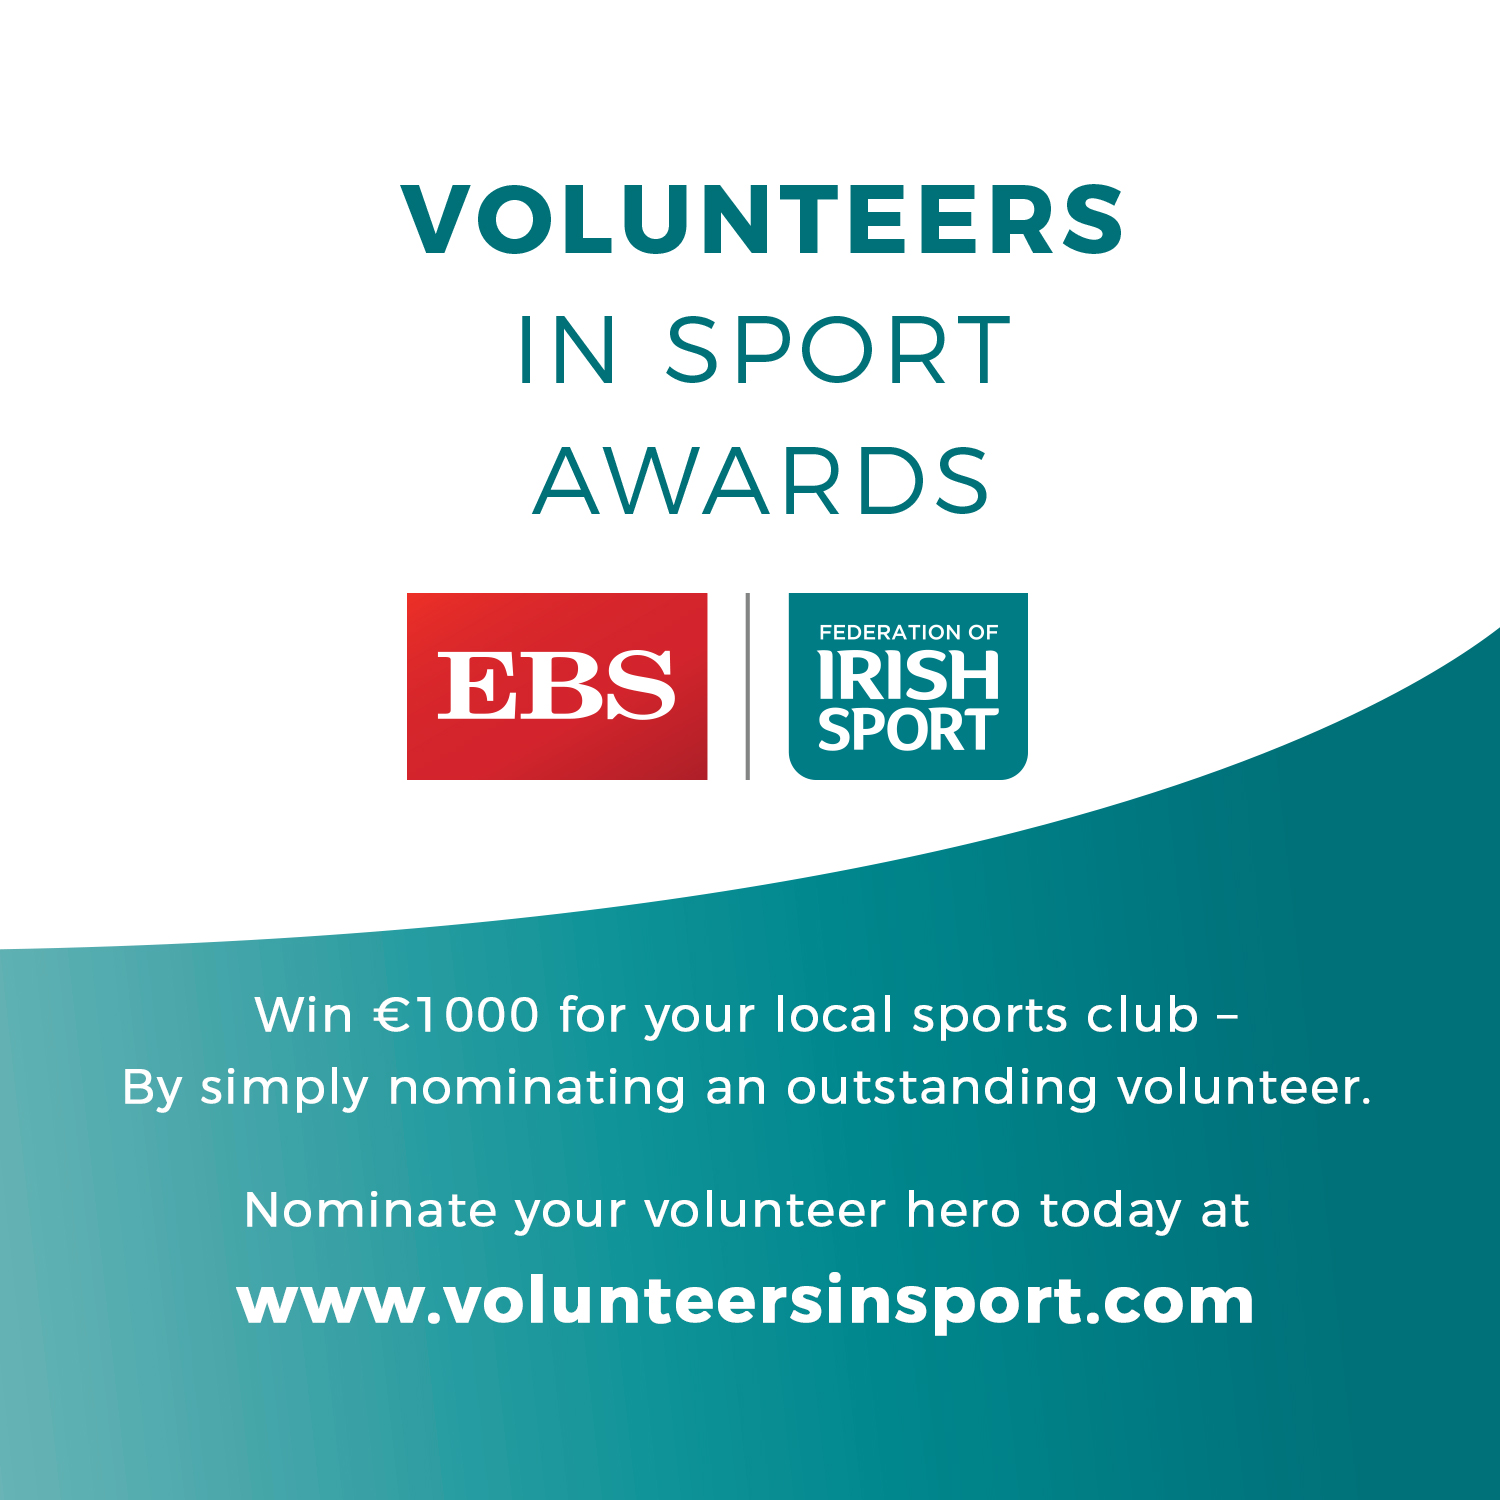 Nominations open for Volunteers in Sports Awards, by EBS and Federation of Irish Sport